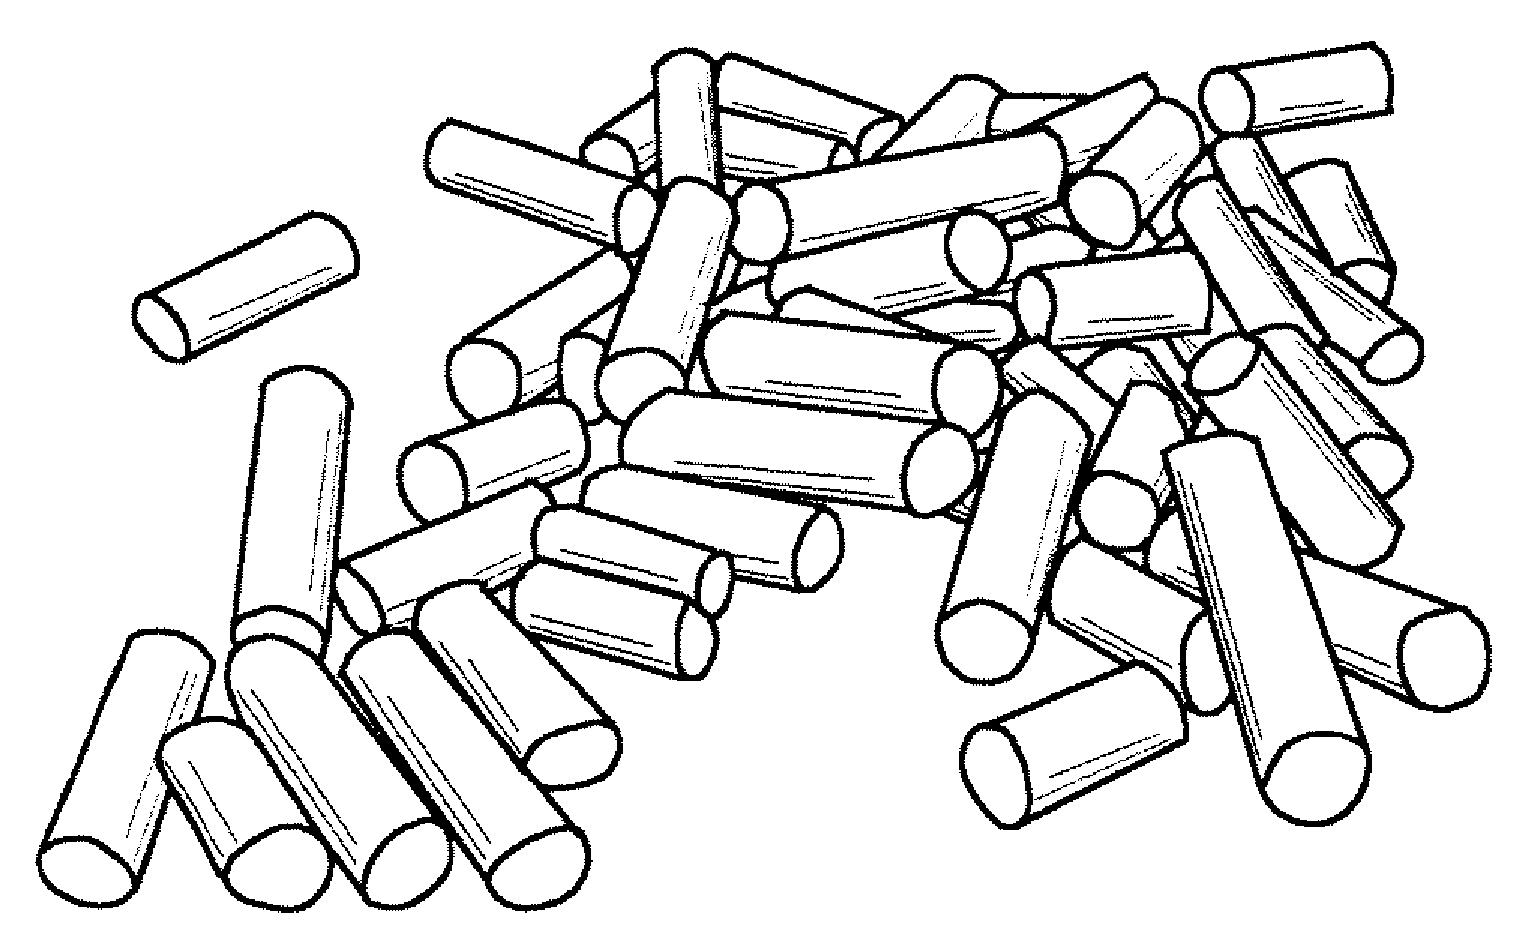 corn stalks coloring pages - photo#36